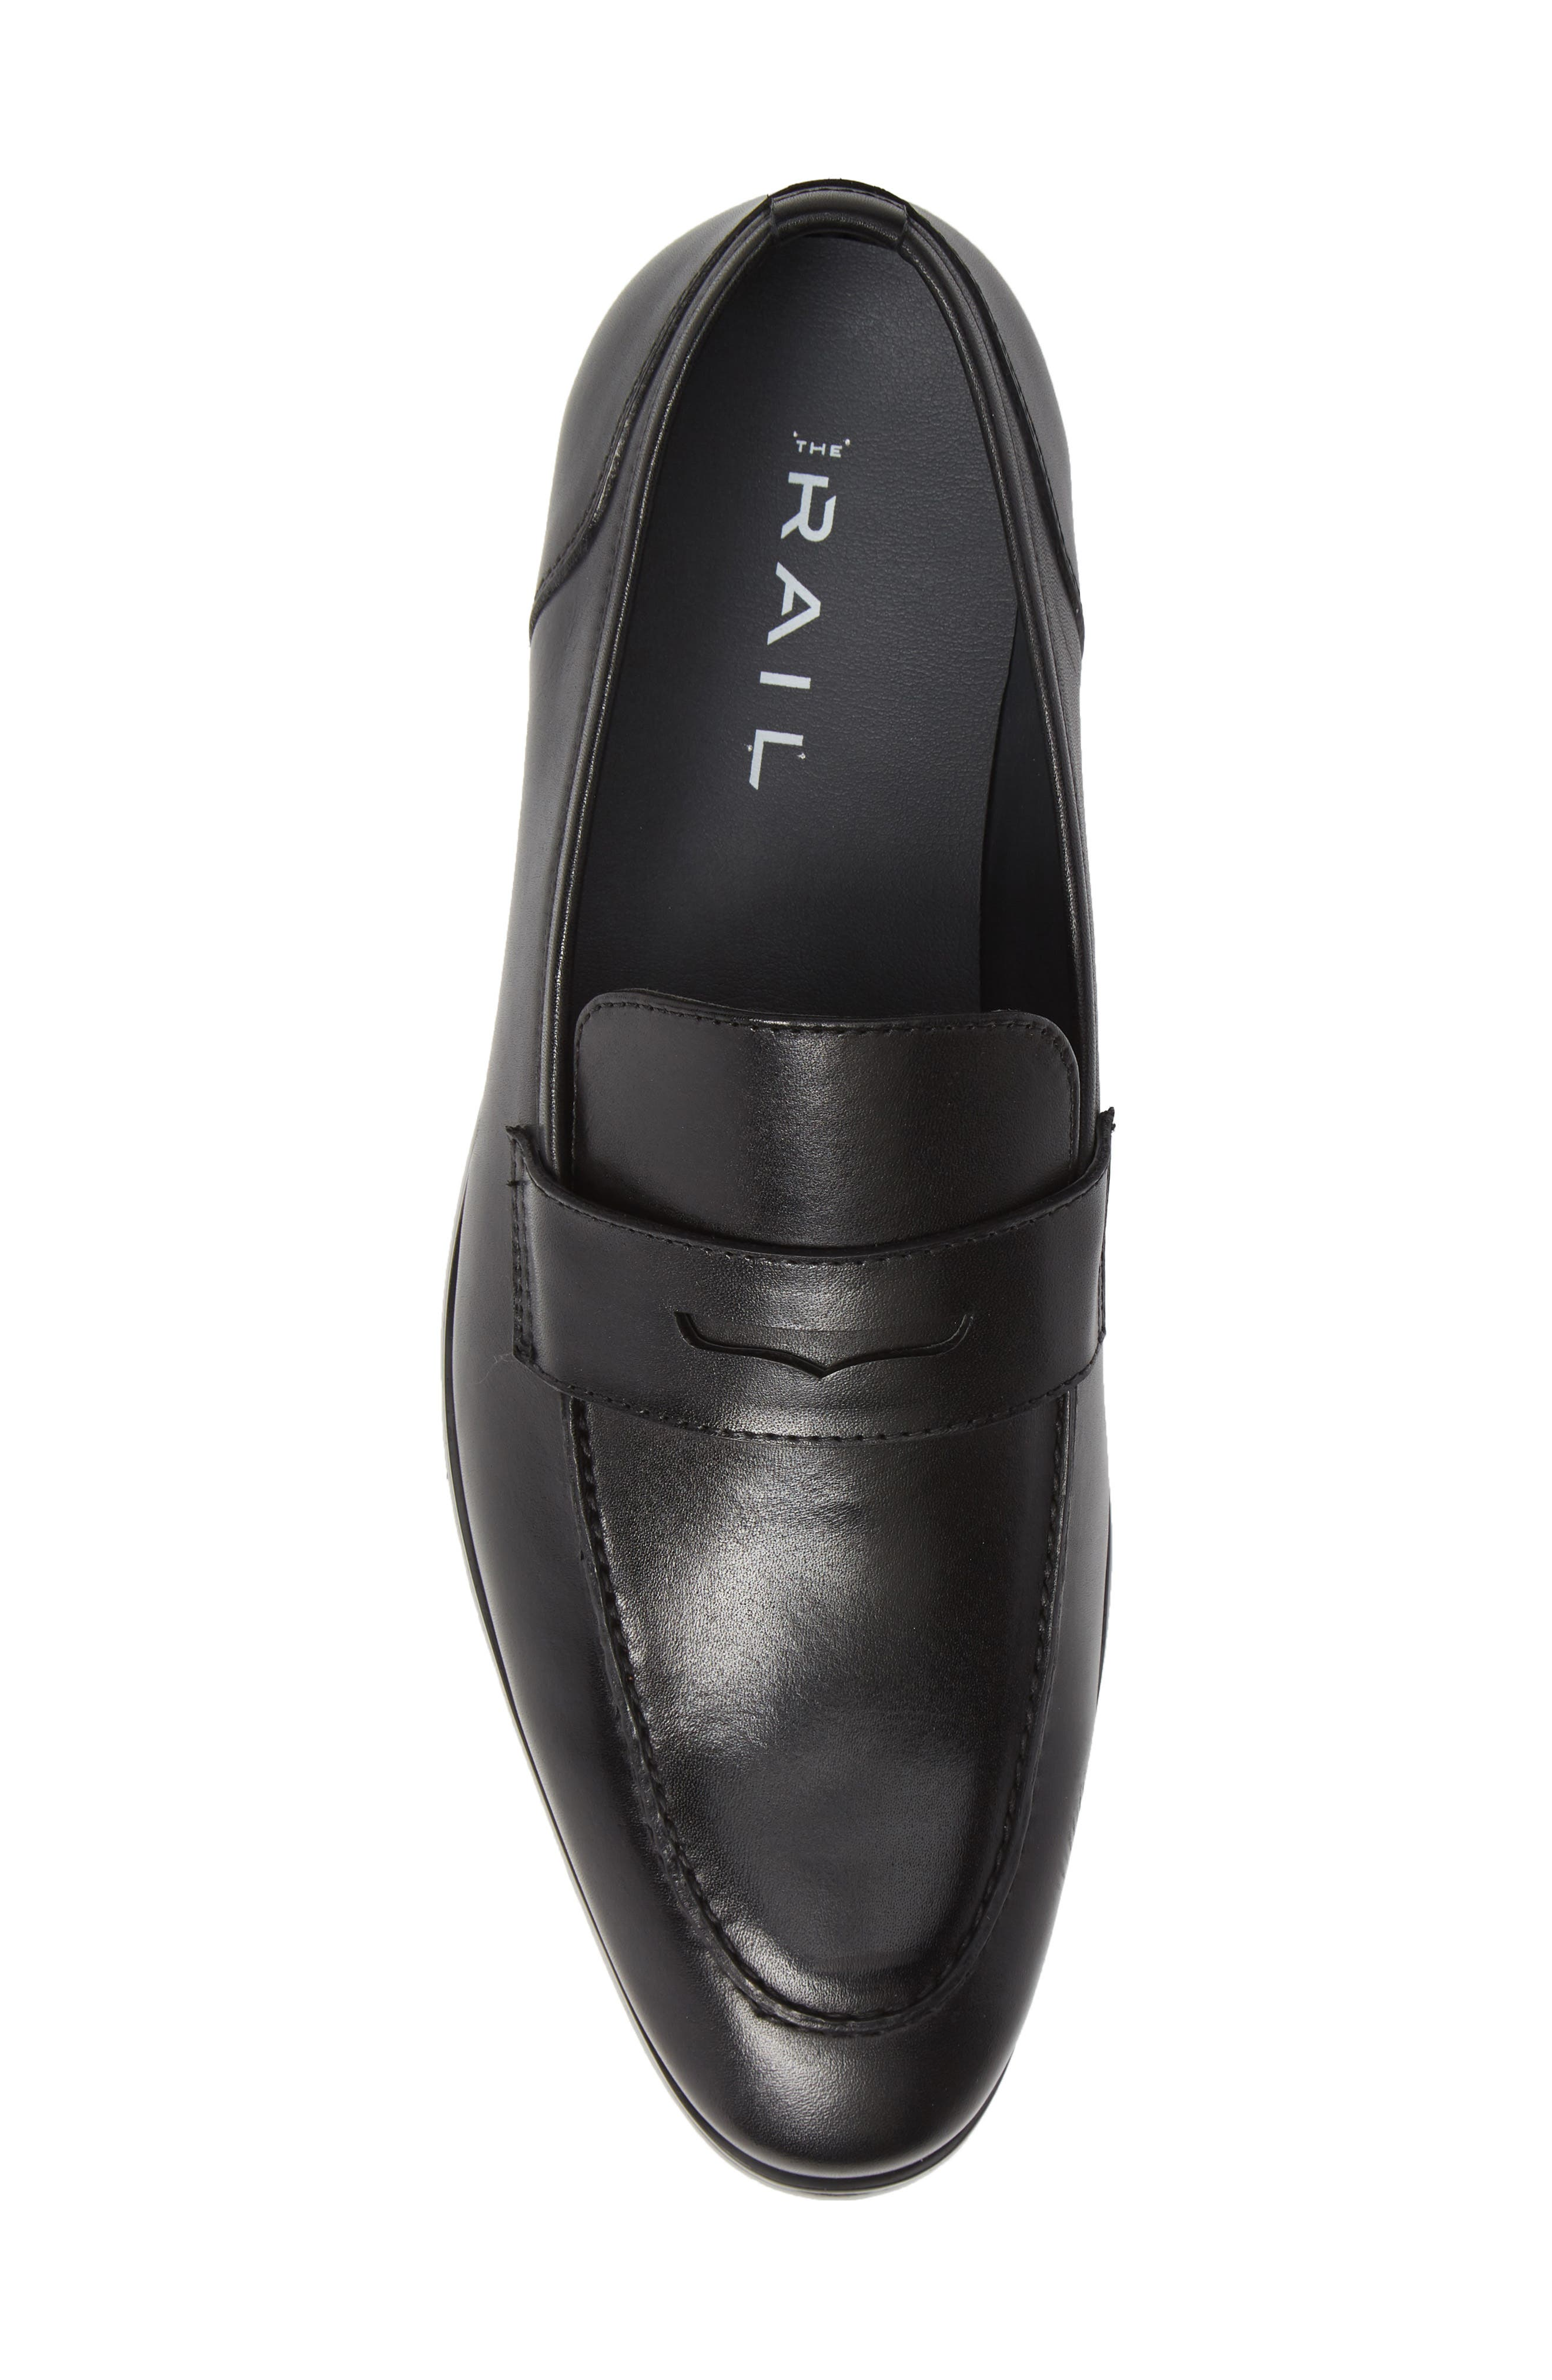 Denio Apron Toe Penny Loafer,                             Alternate thumbnail 5, color,                             BLACK LEATHER